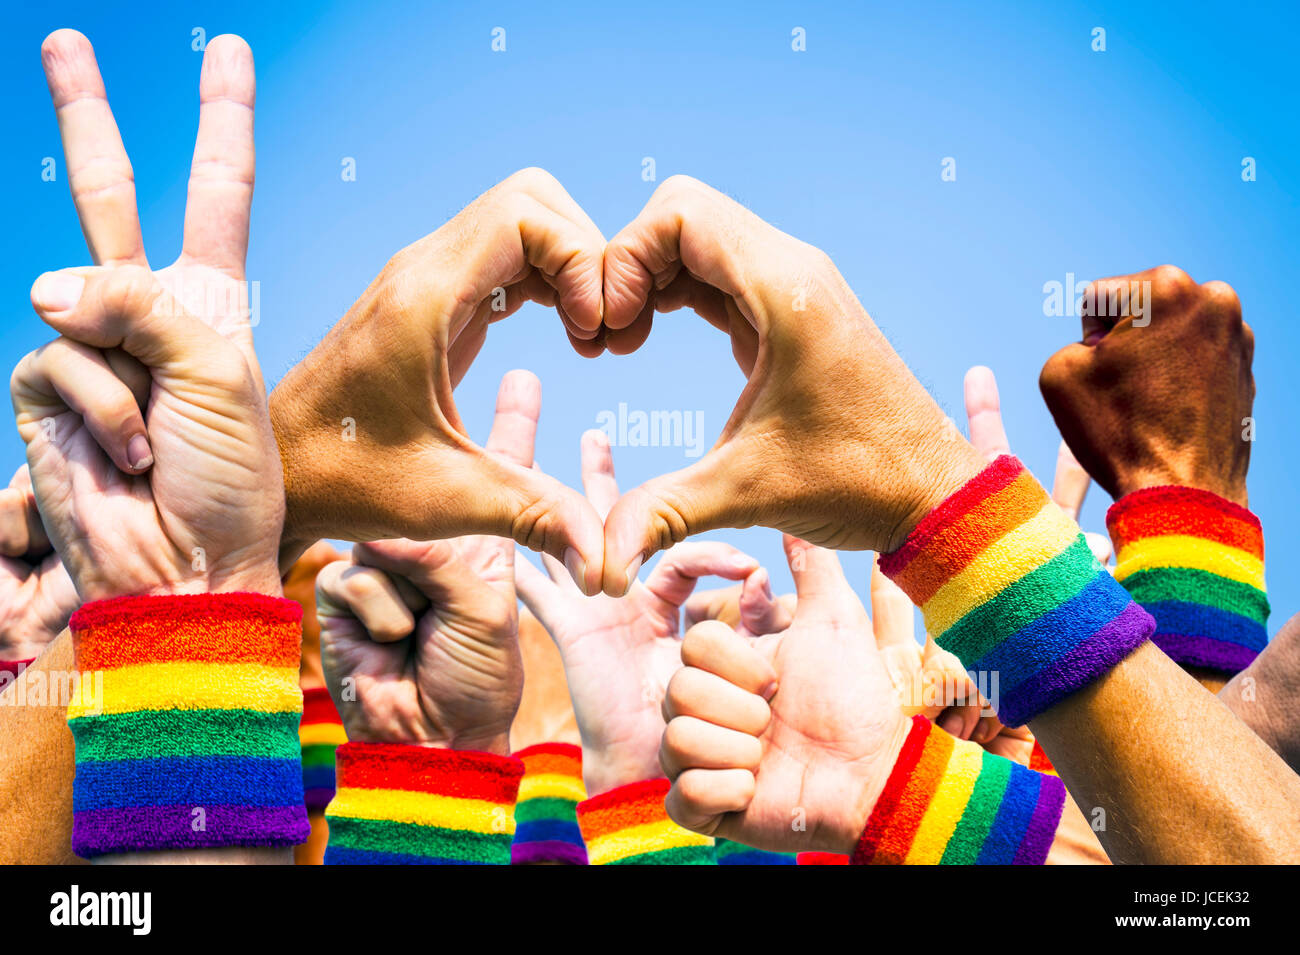 Crowd of hands making supportive signals at gay pride parade - Stock Image